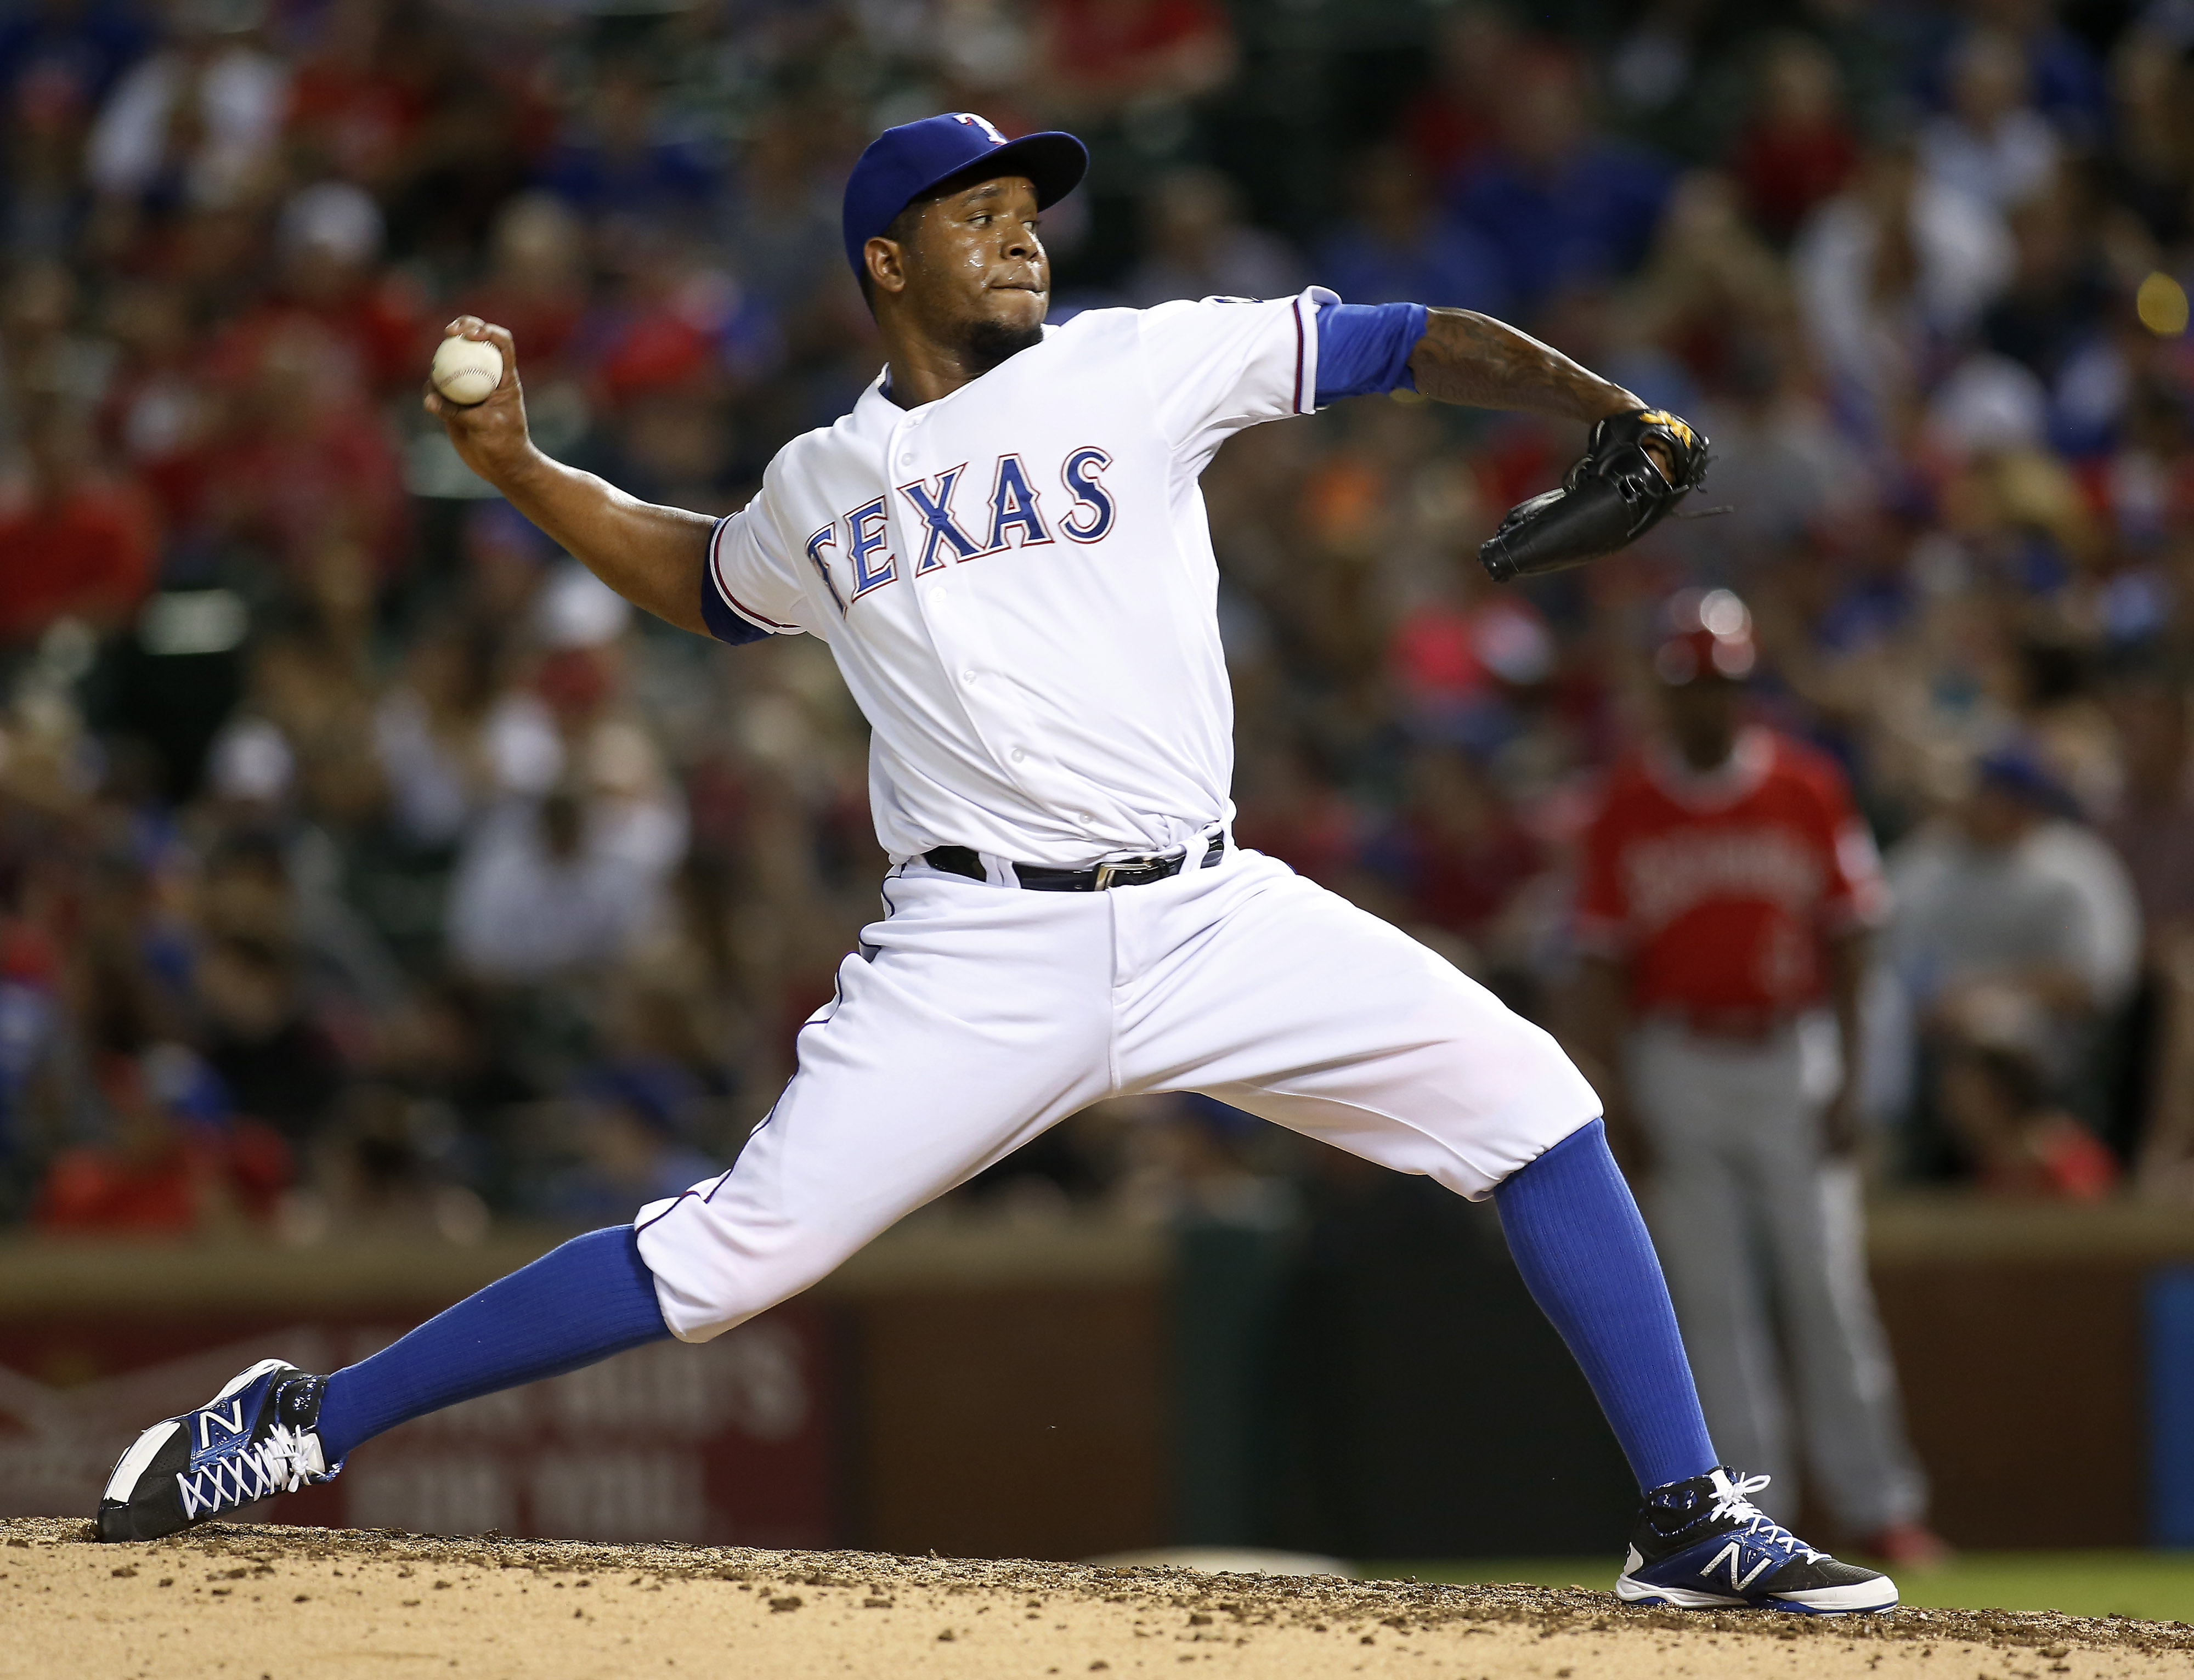 Texas Rangers relief pitcher Neftali Feliz throws against the Los Angeles Angels during the seventh inning of a baseball game in Arlington, Texas, on Friday, July 3, 2015. (AP Photo/Brad Loper)